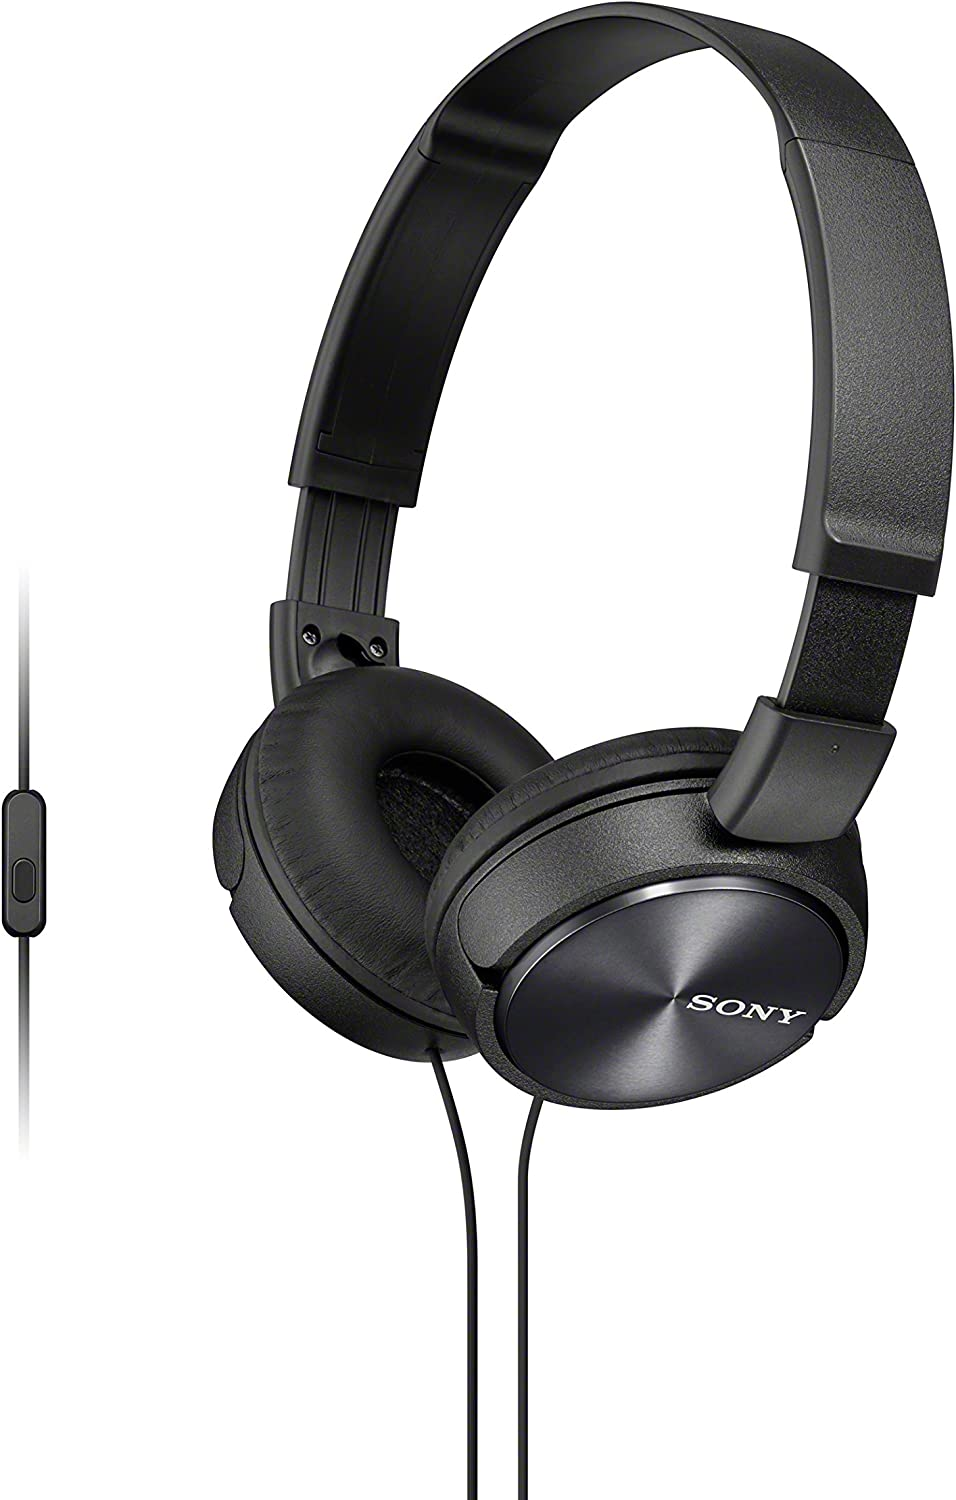 Sony-AURICULARES MDR ZX310APB - Hombre